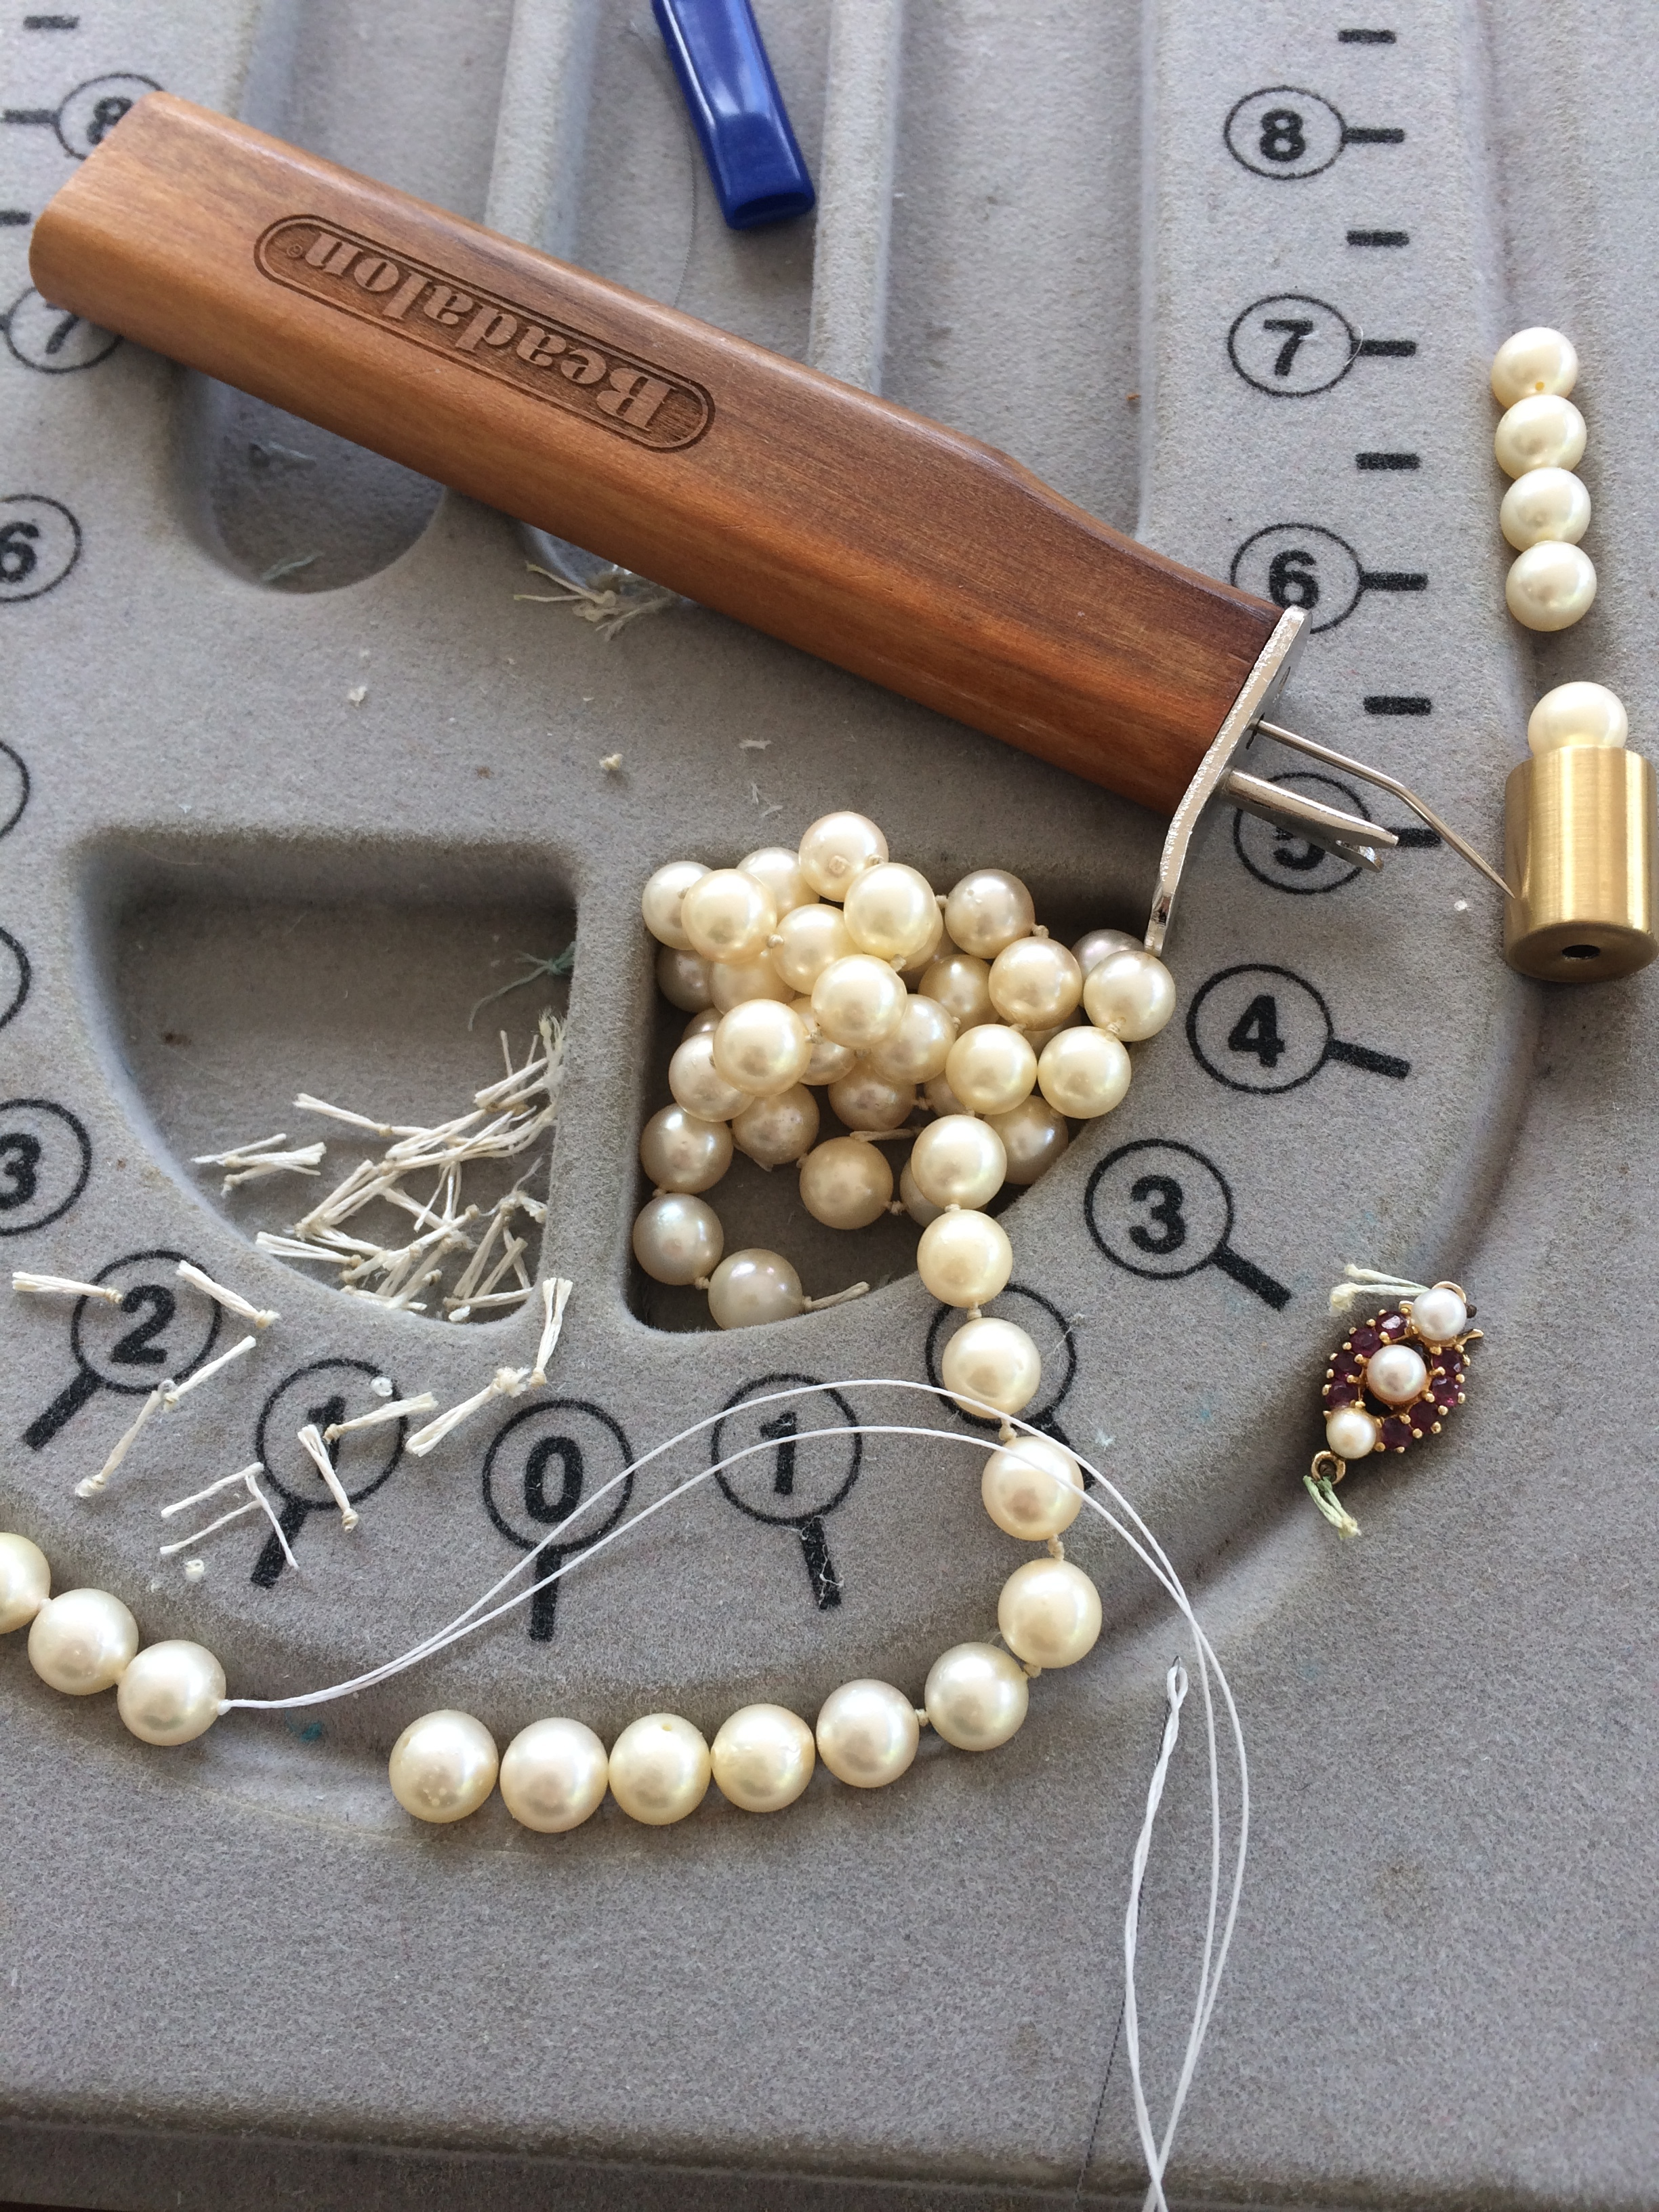 Knotting tool and a lessening pile of pearls